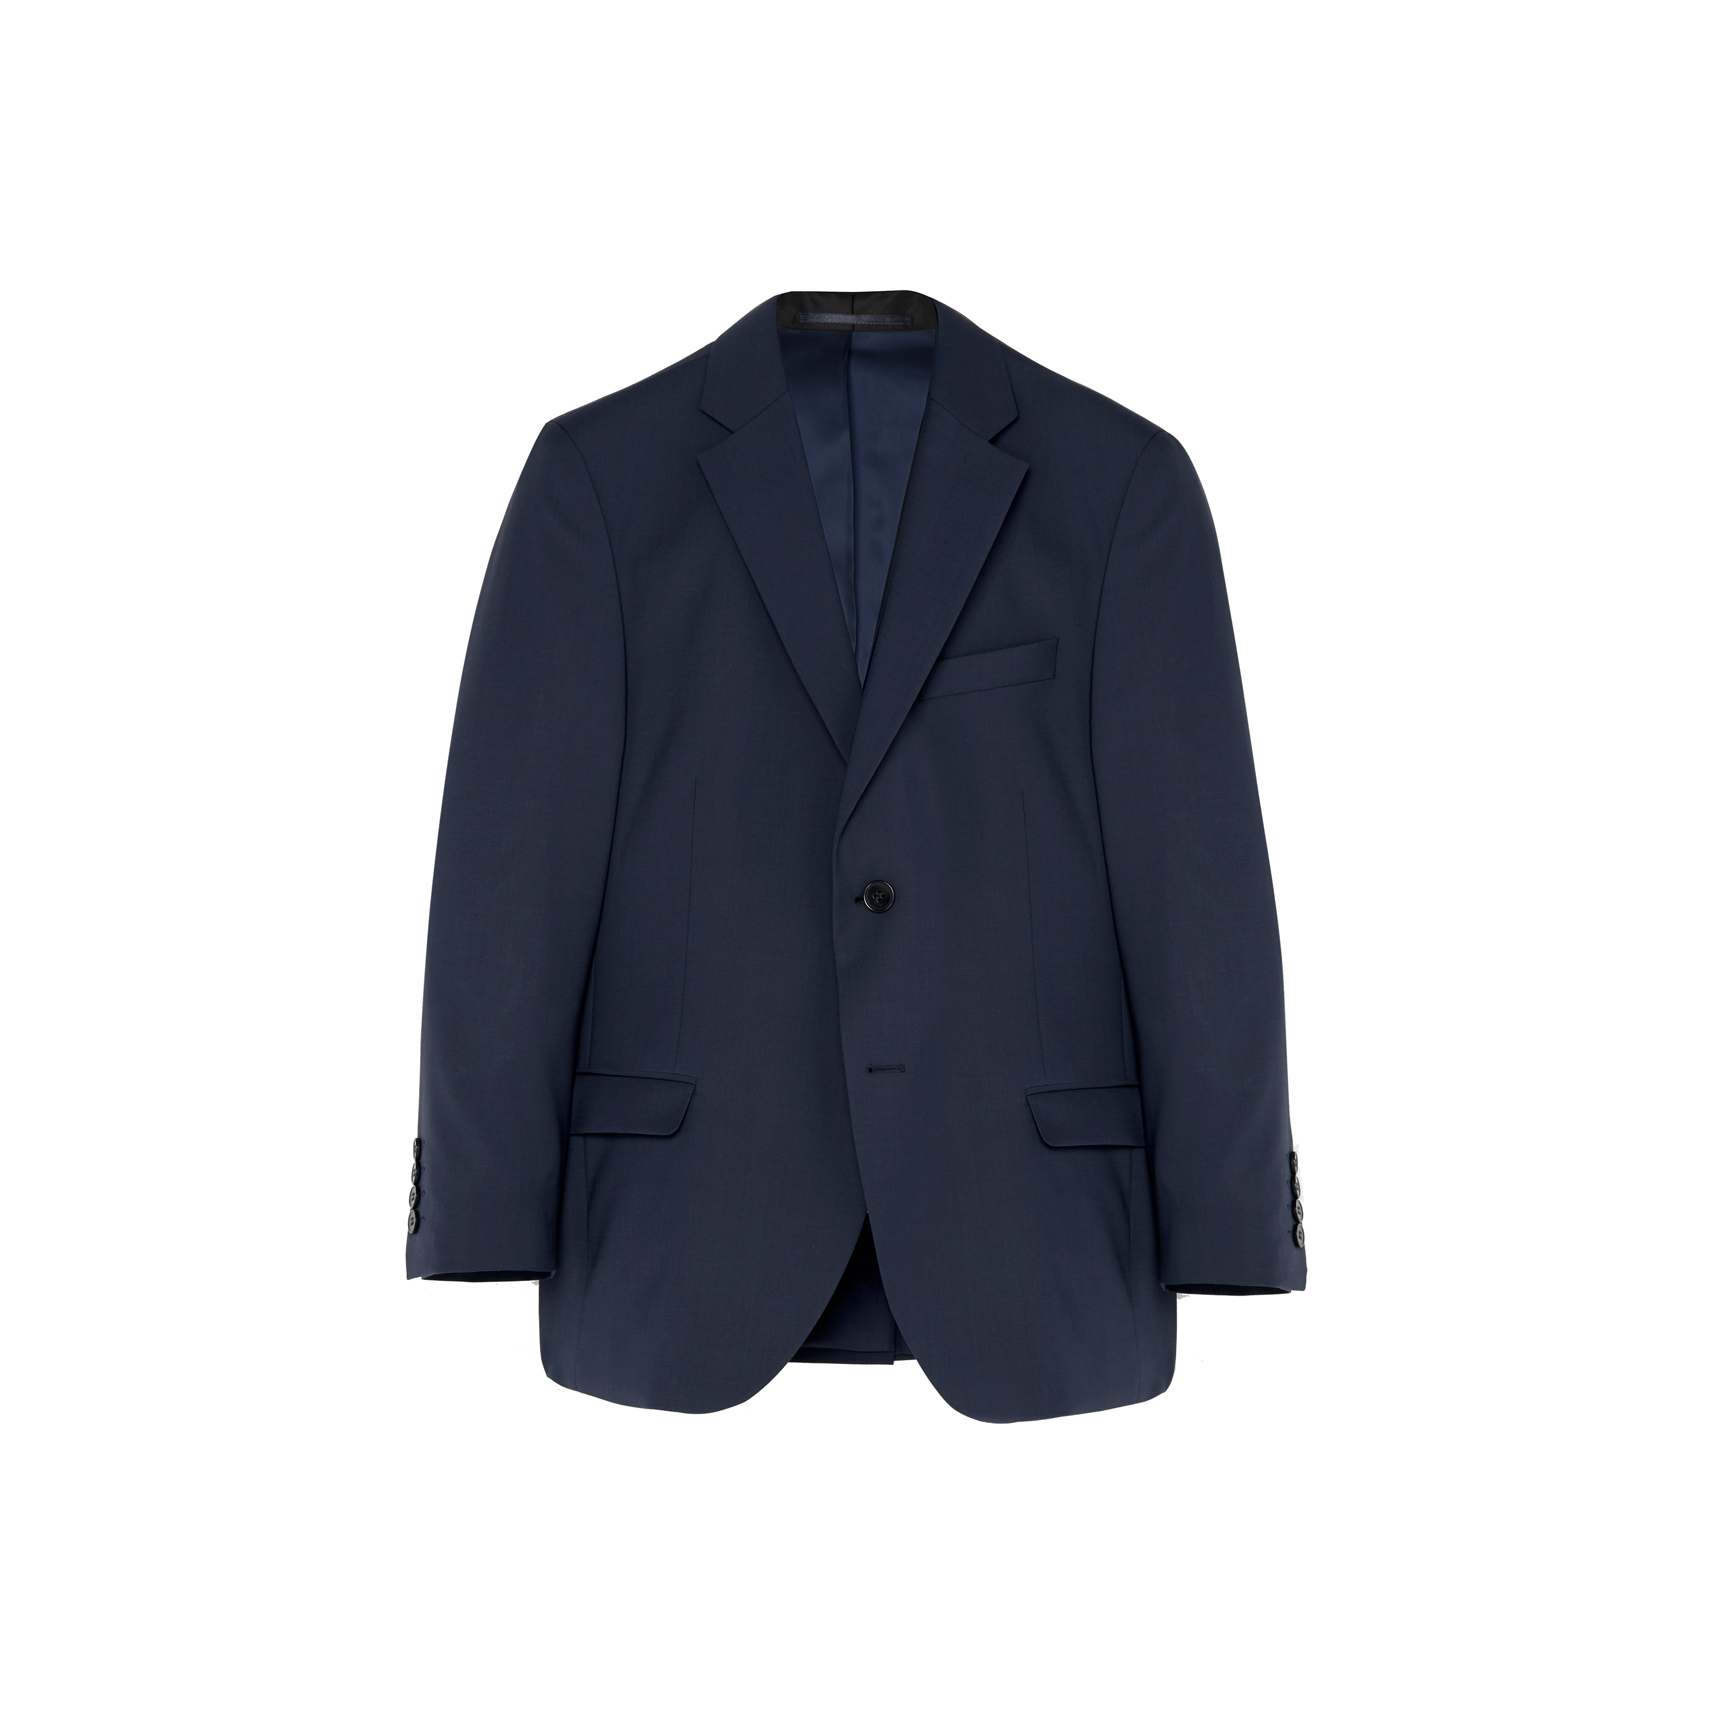 navy-wool-jacket